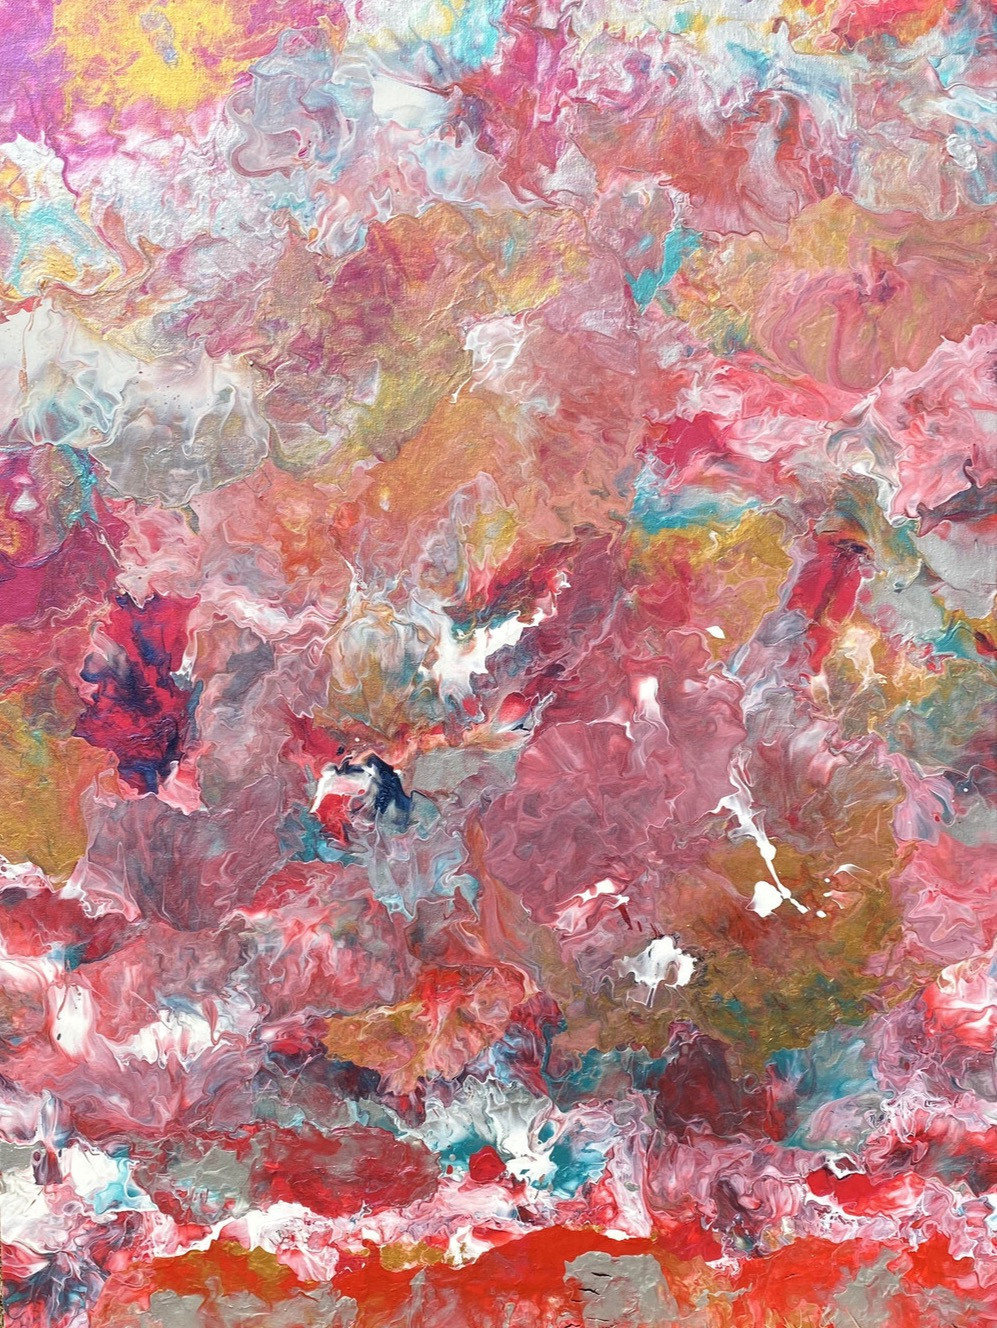 Fluid painting and art by Alessia Camoirano Bruges. Dipinto fluido